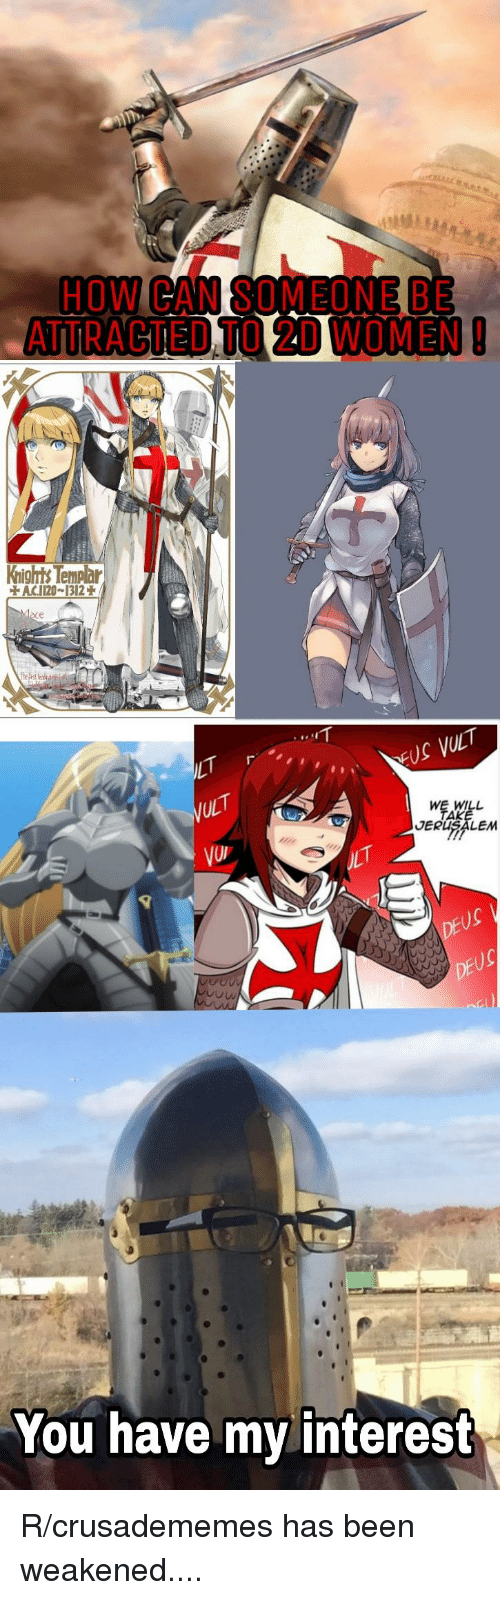 Fac, History, and Women: HOW CAN SOMEONE BE  ATTRACTED TO 2D WOMEN  Knights Tempar  FAC.11201312  се  WE WILL  AK  JERUSALEM  yg  Ow  You have my interest